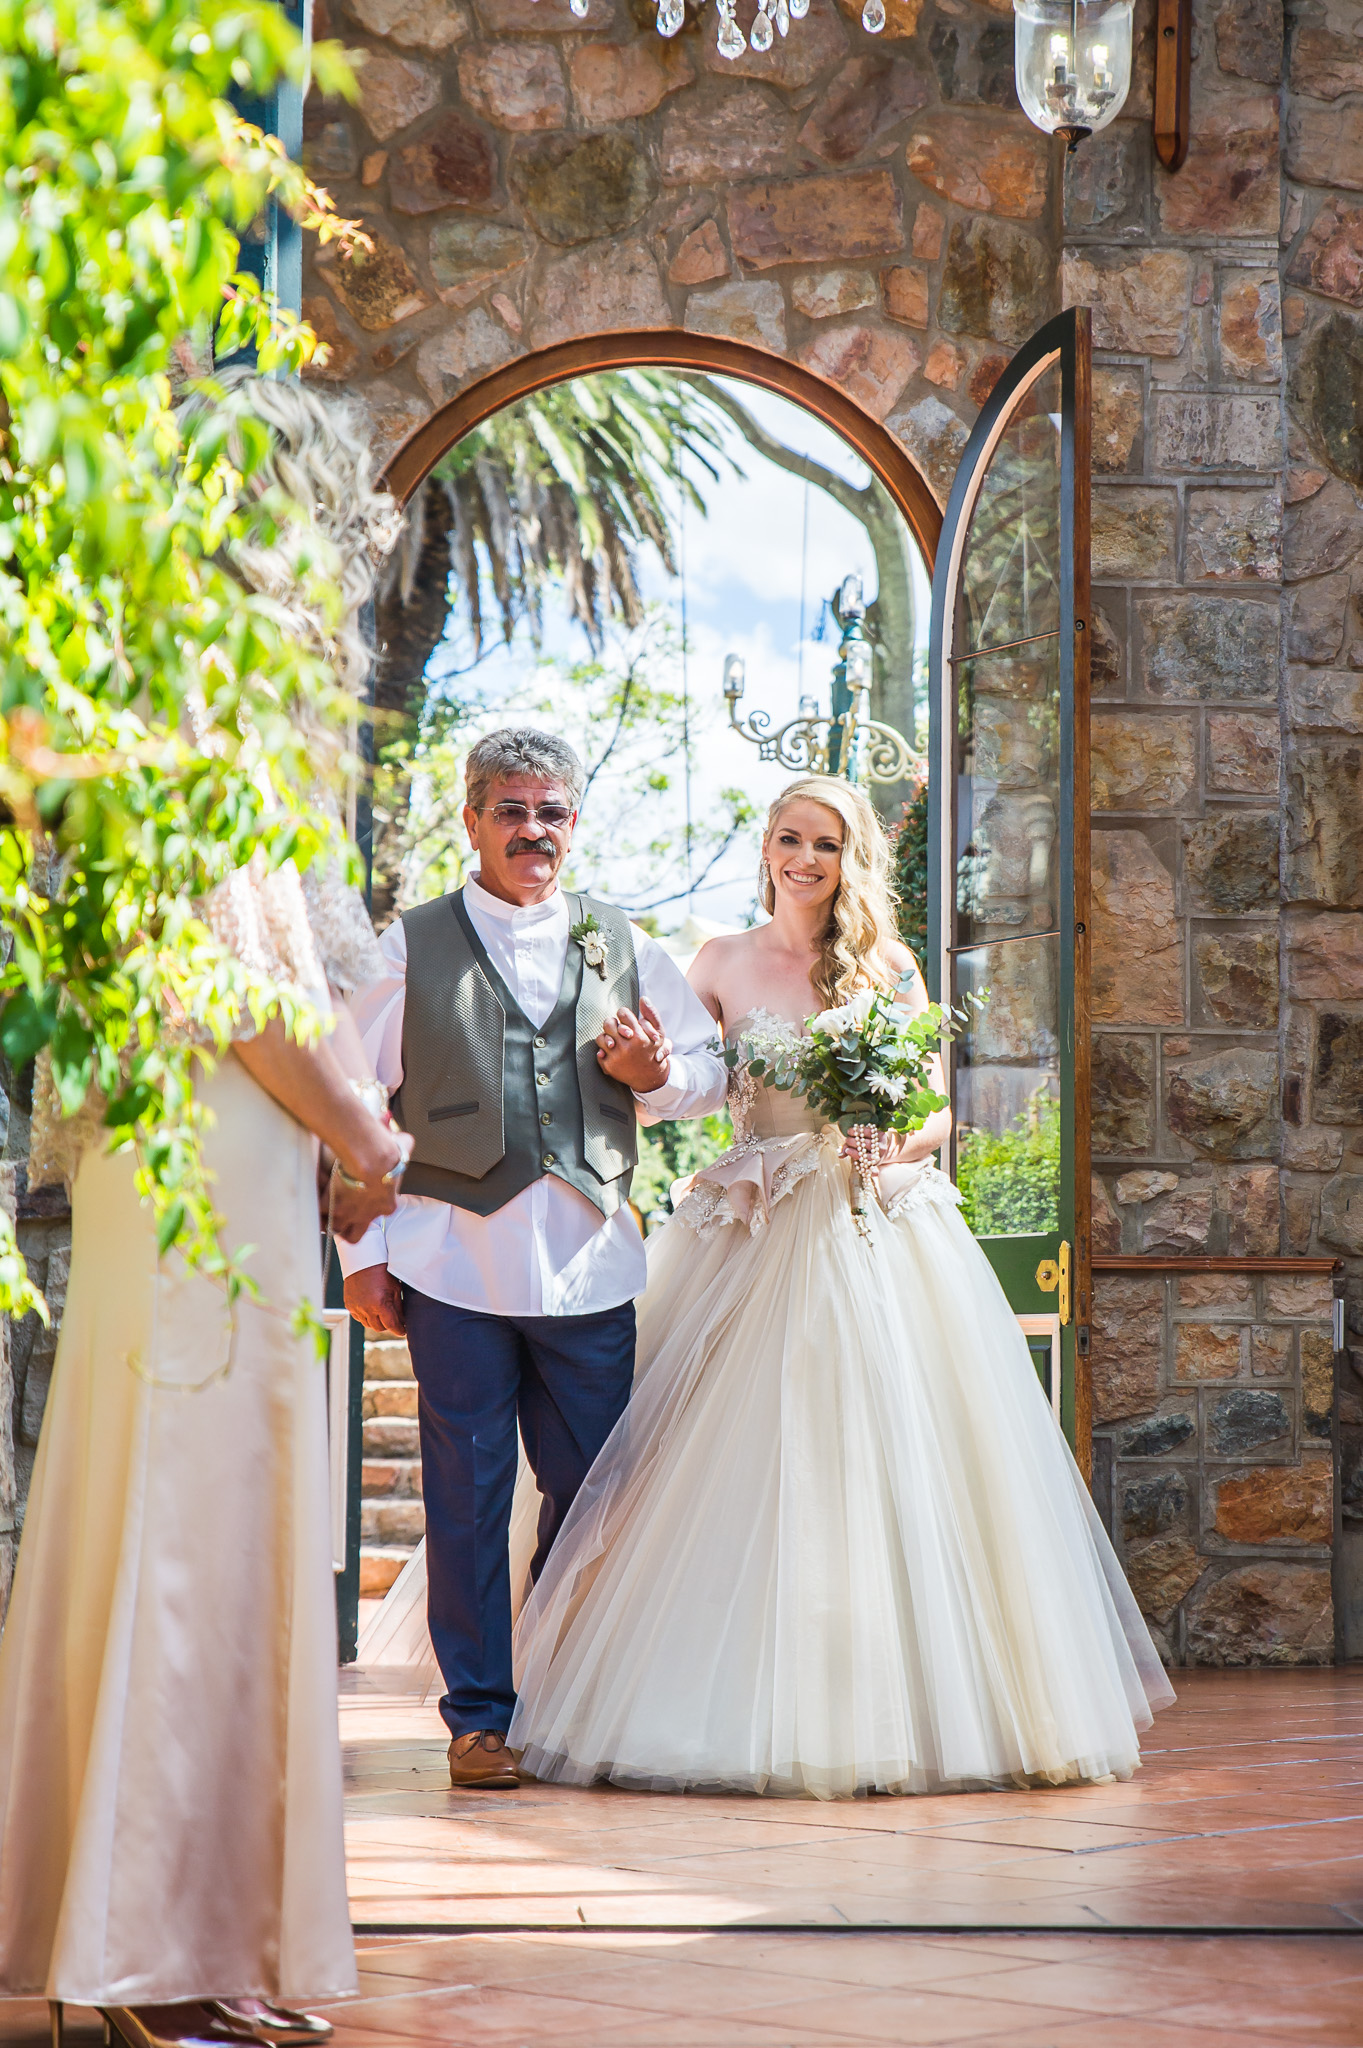 George and Charlene - Shepstone Gardens - Sneak Peak (19 of 49).jpg